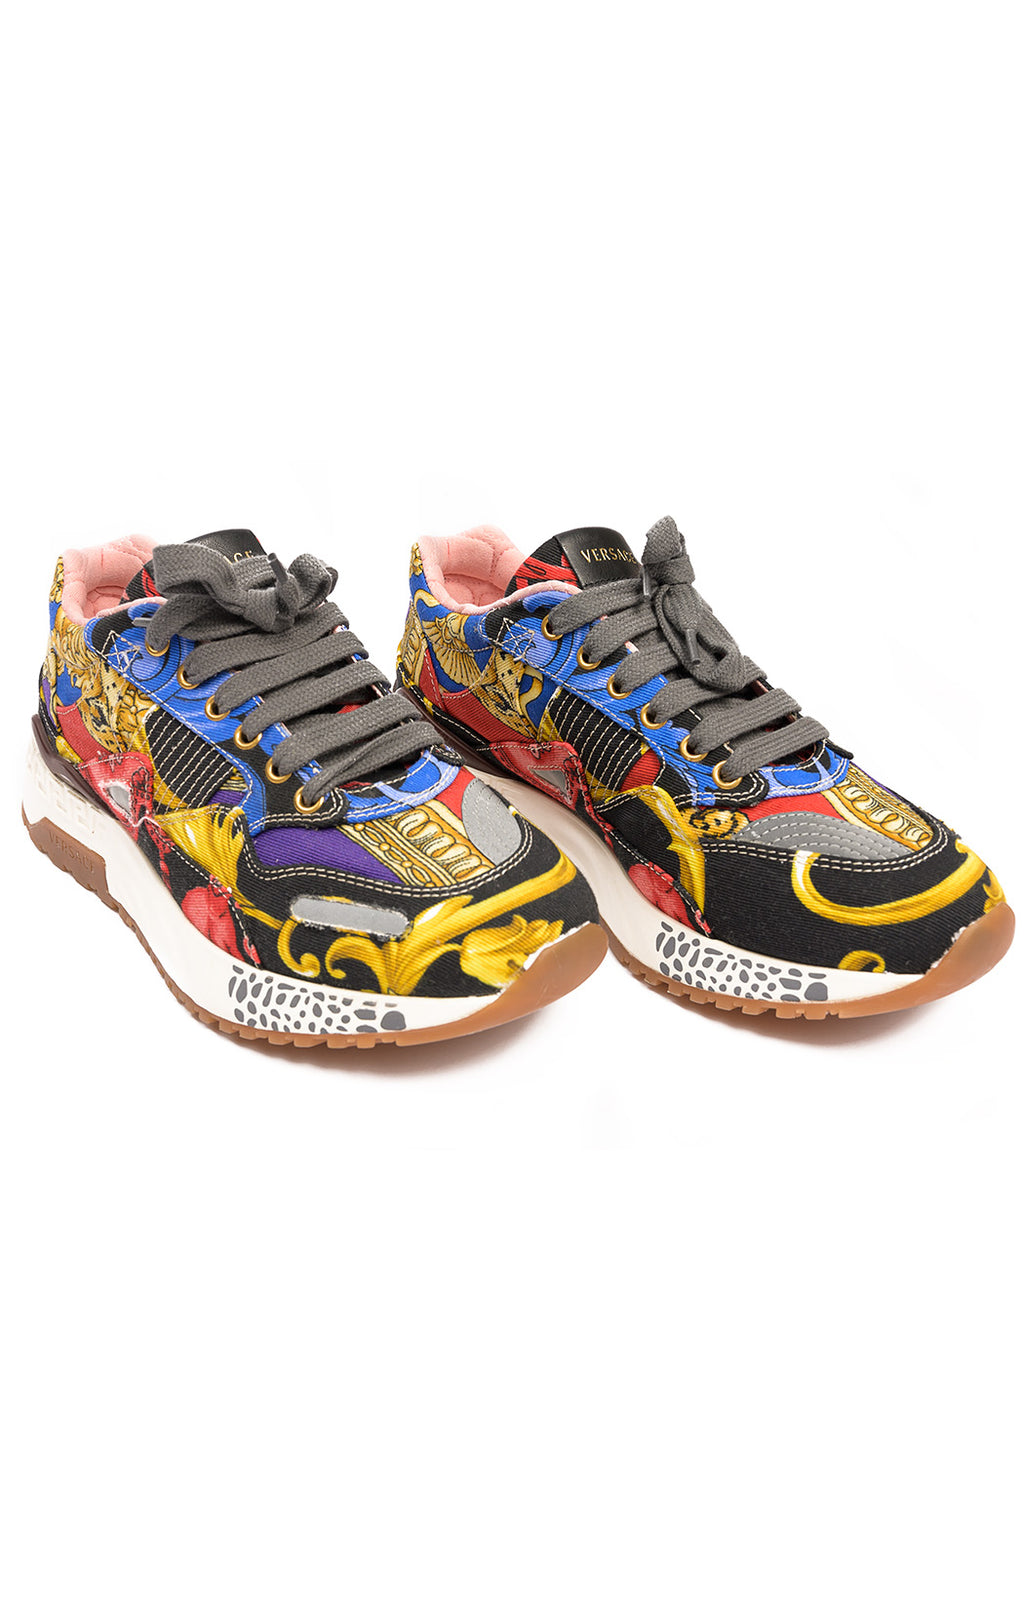 Front view of VERSACE Tennis shoe Size: 5